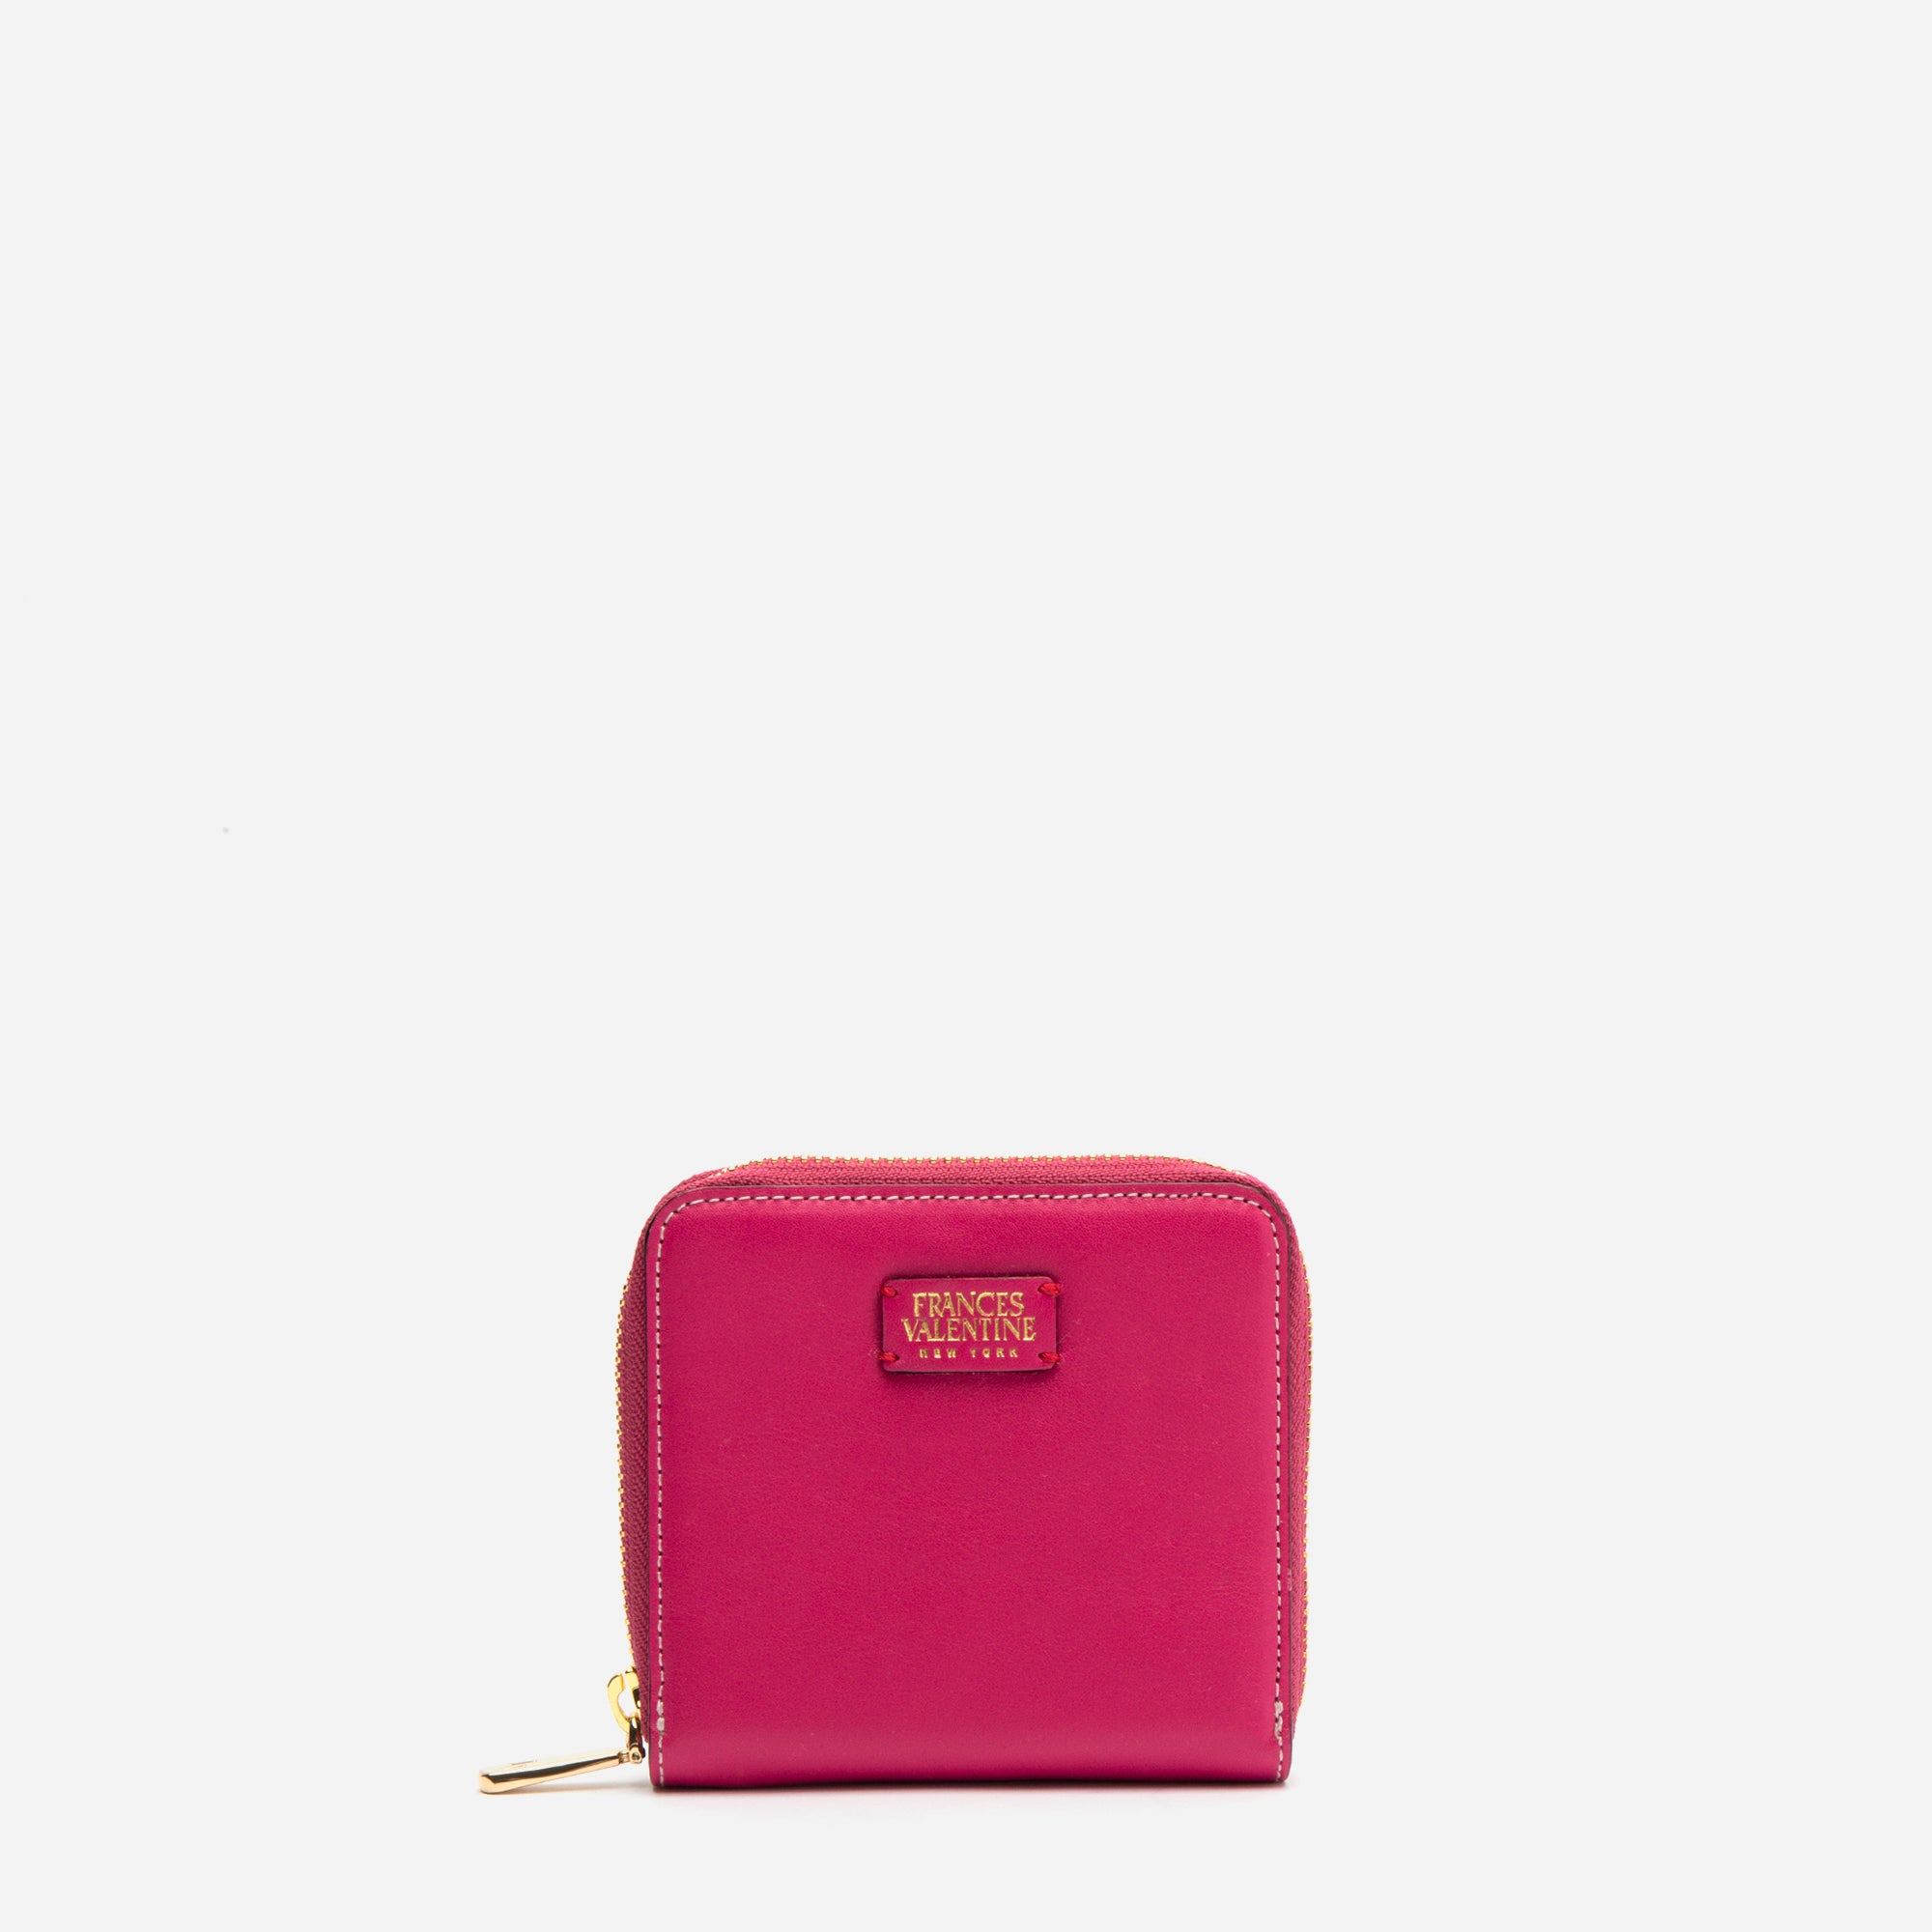 Roosevelt Small Zip Wallet Pink Red - Frances Valentine